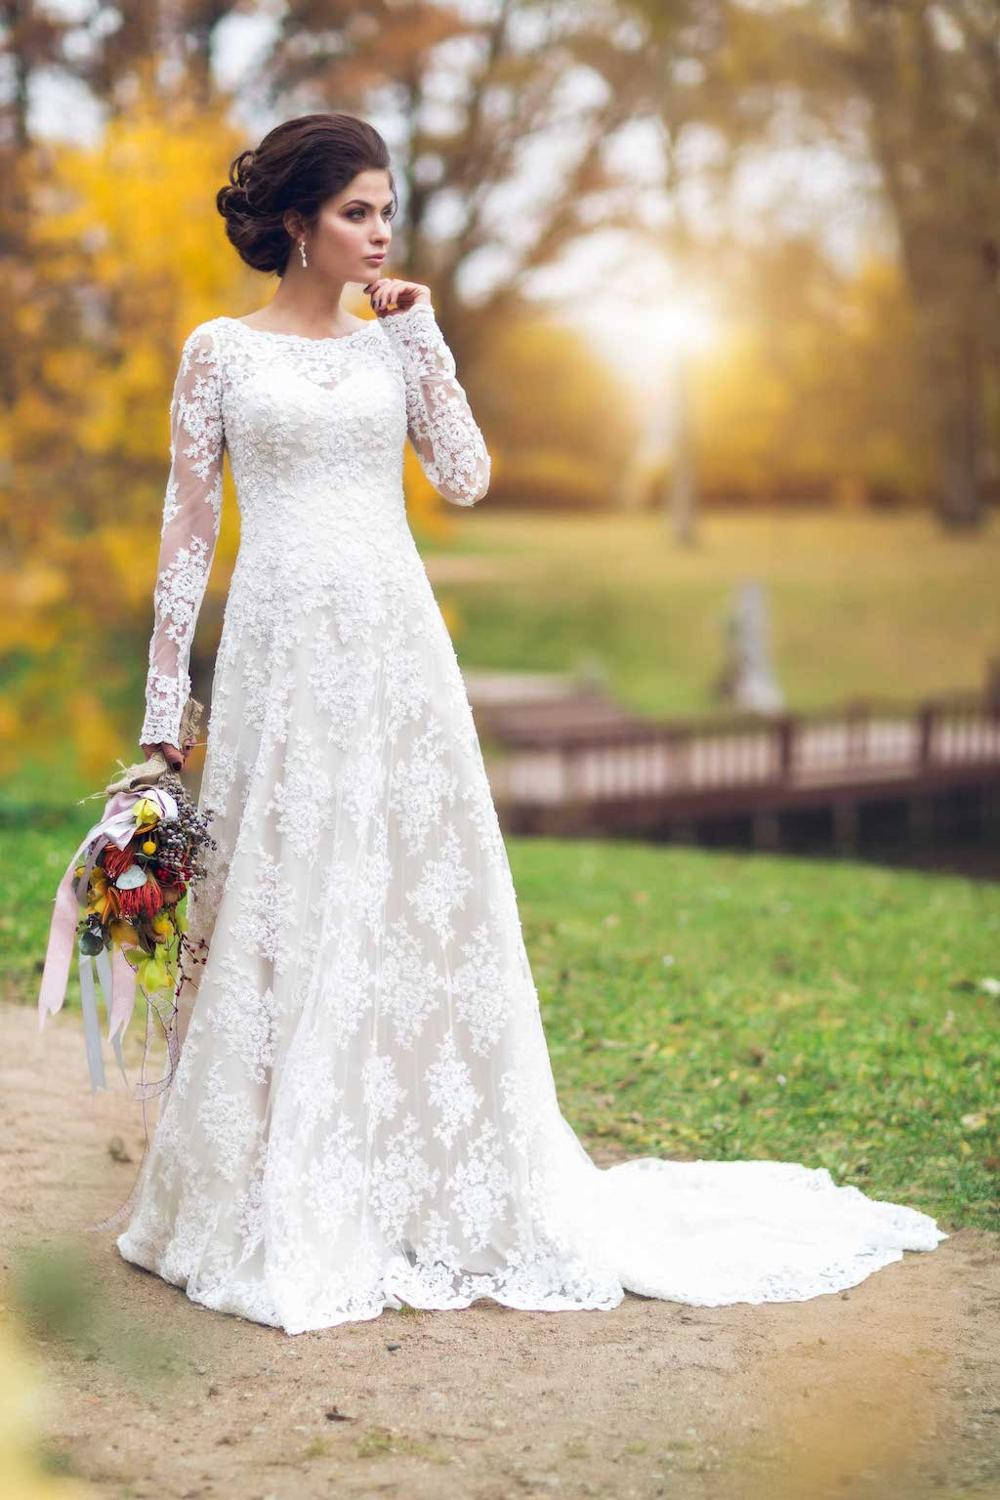 Vintage Lace A-line Long Sleeve Modest Wedding Dresses With Full Sleeves Country Western Women Bridal Gowns Sleeved